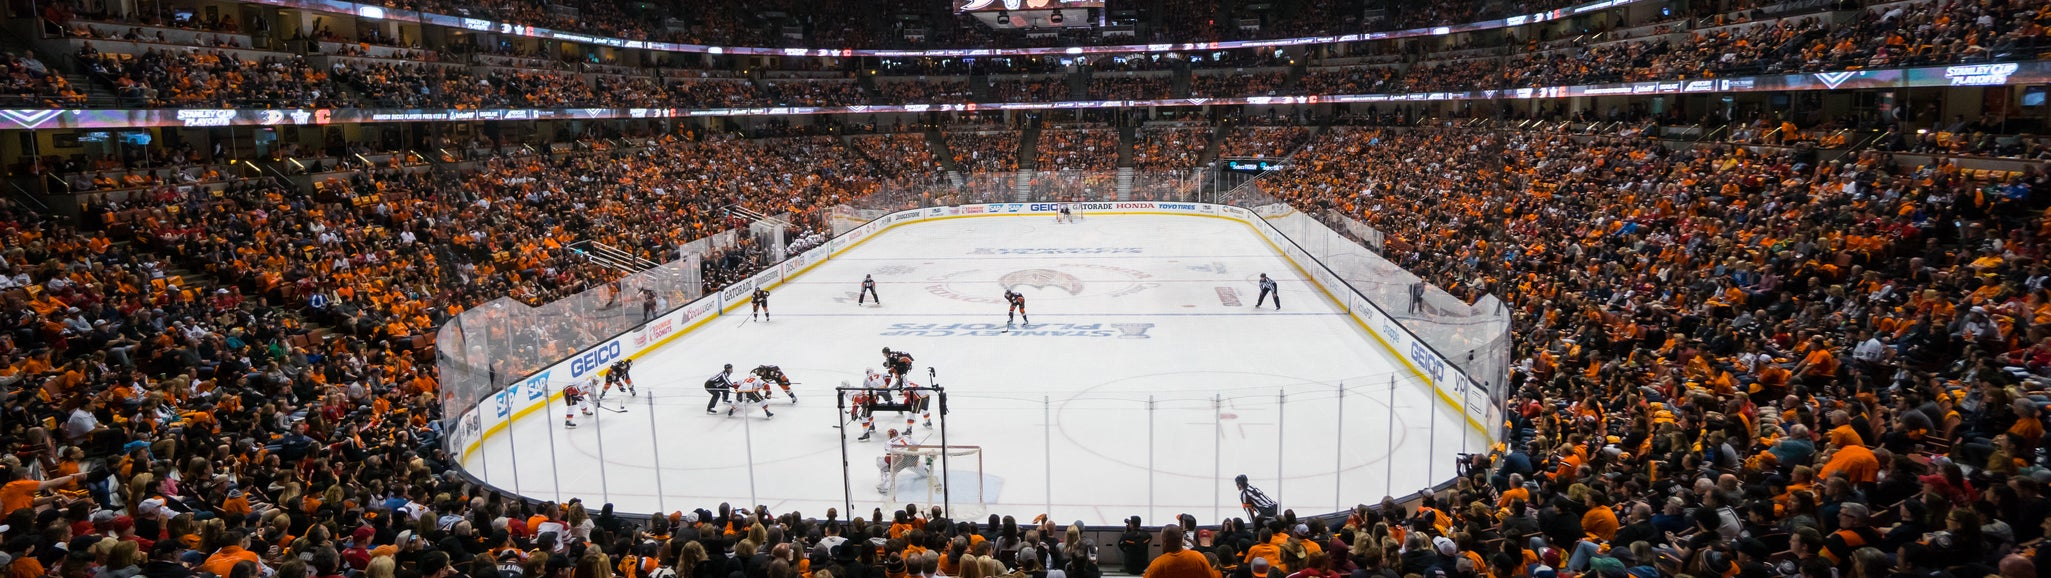 Seat view from Plaza Goal